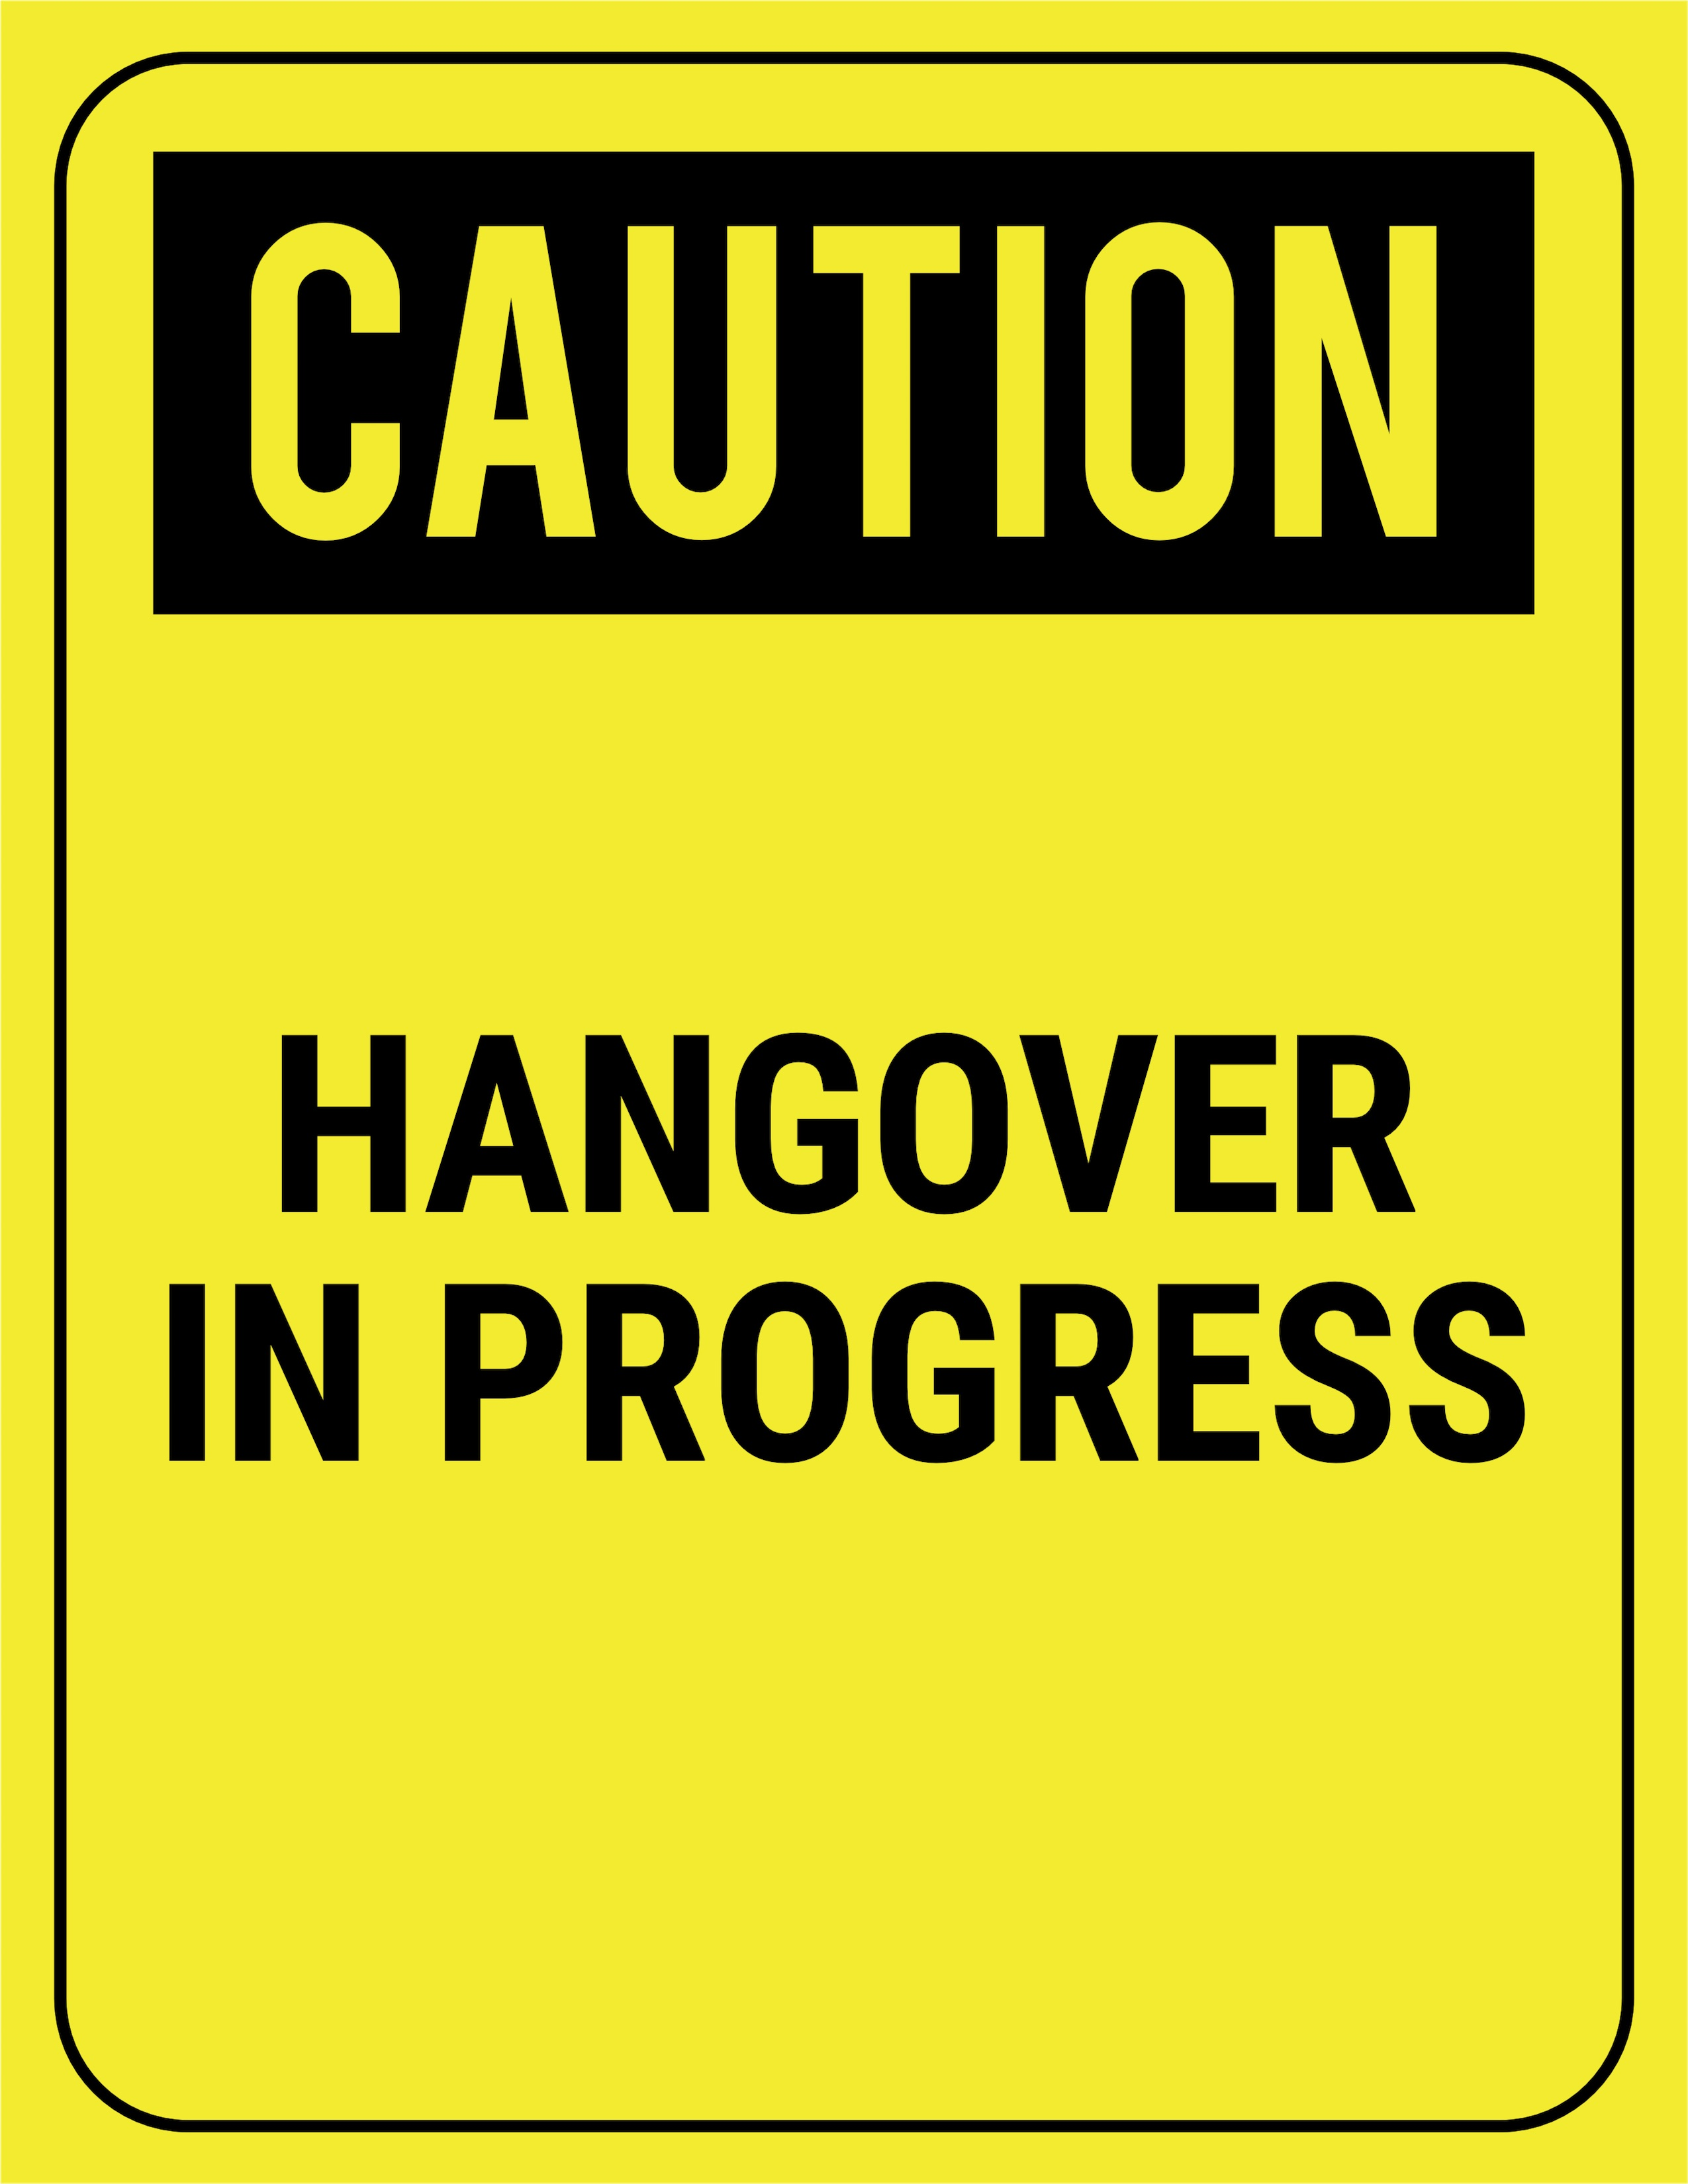 printable 60th birthday signs ; funny-safety-sign-caution-hangover-in-progress-2550x3300